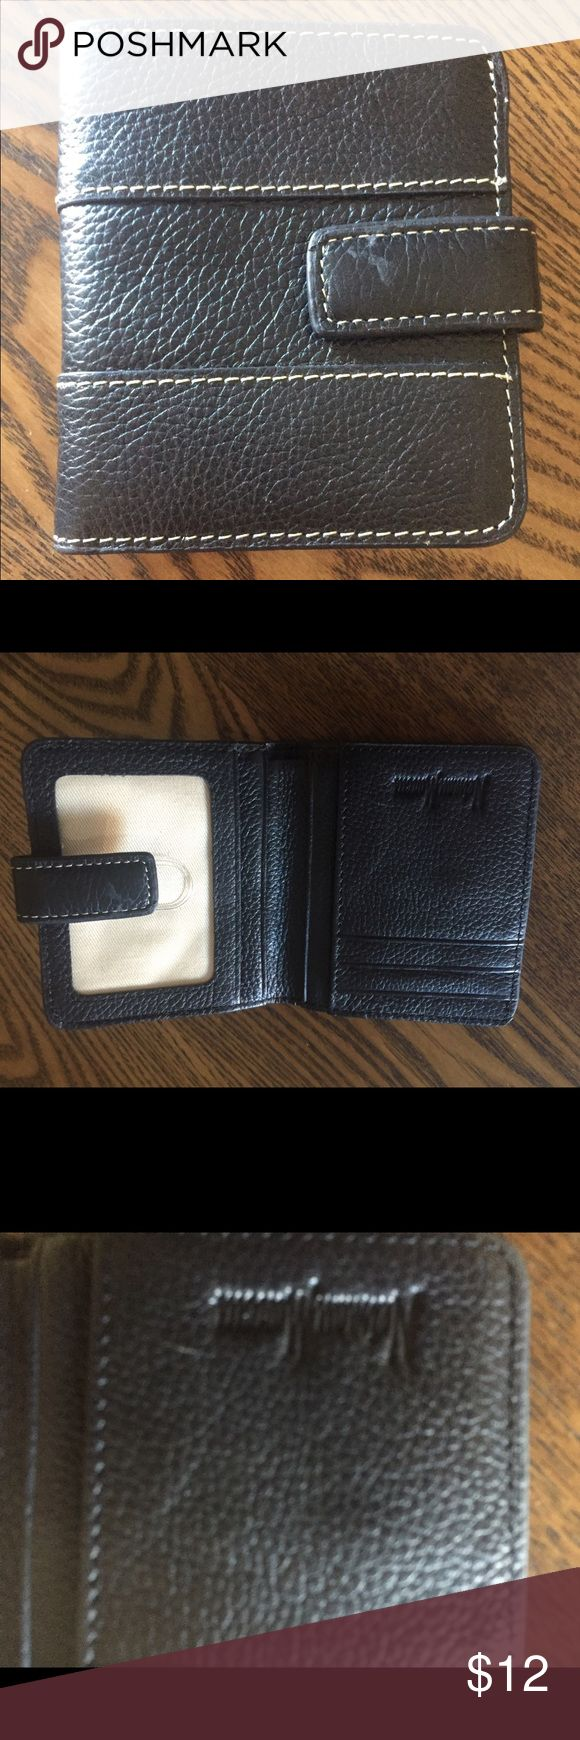 Black Leather Wallet Neiman Marcus NWOT never used. Black Leather Wallet from Neiman Marcus. Black pebble leather with slight cream stitching. Outside back has a zipper compartment for change. Inside plastic slot for ID. 6 slots for credit cards. Longer section too for bills. Snap closer . A compact wallet great for travel or if you like it need a smaller wallet. Dimensions are 3.5 x 4 inches. Neiman Marcus Bags Wallets